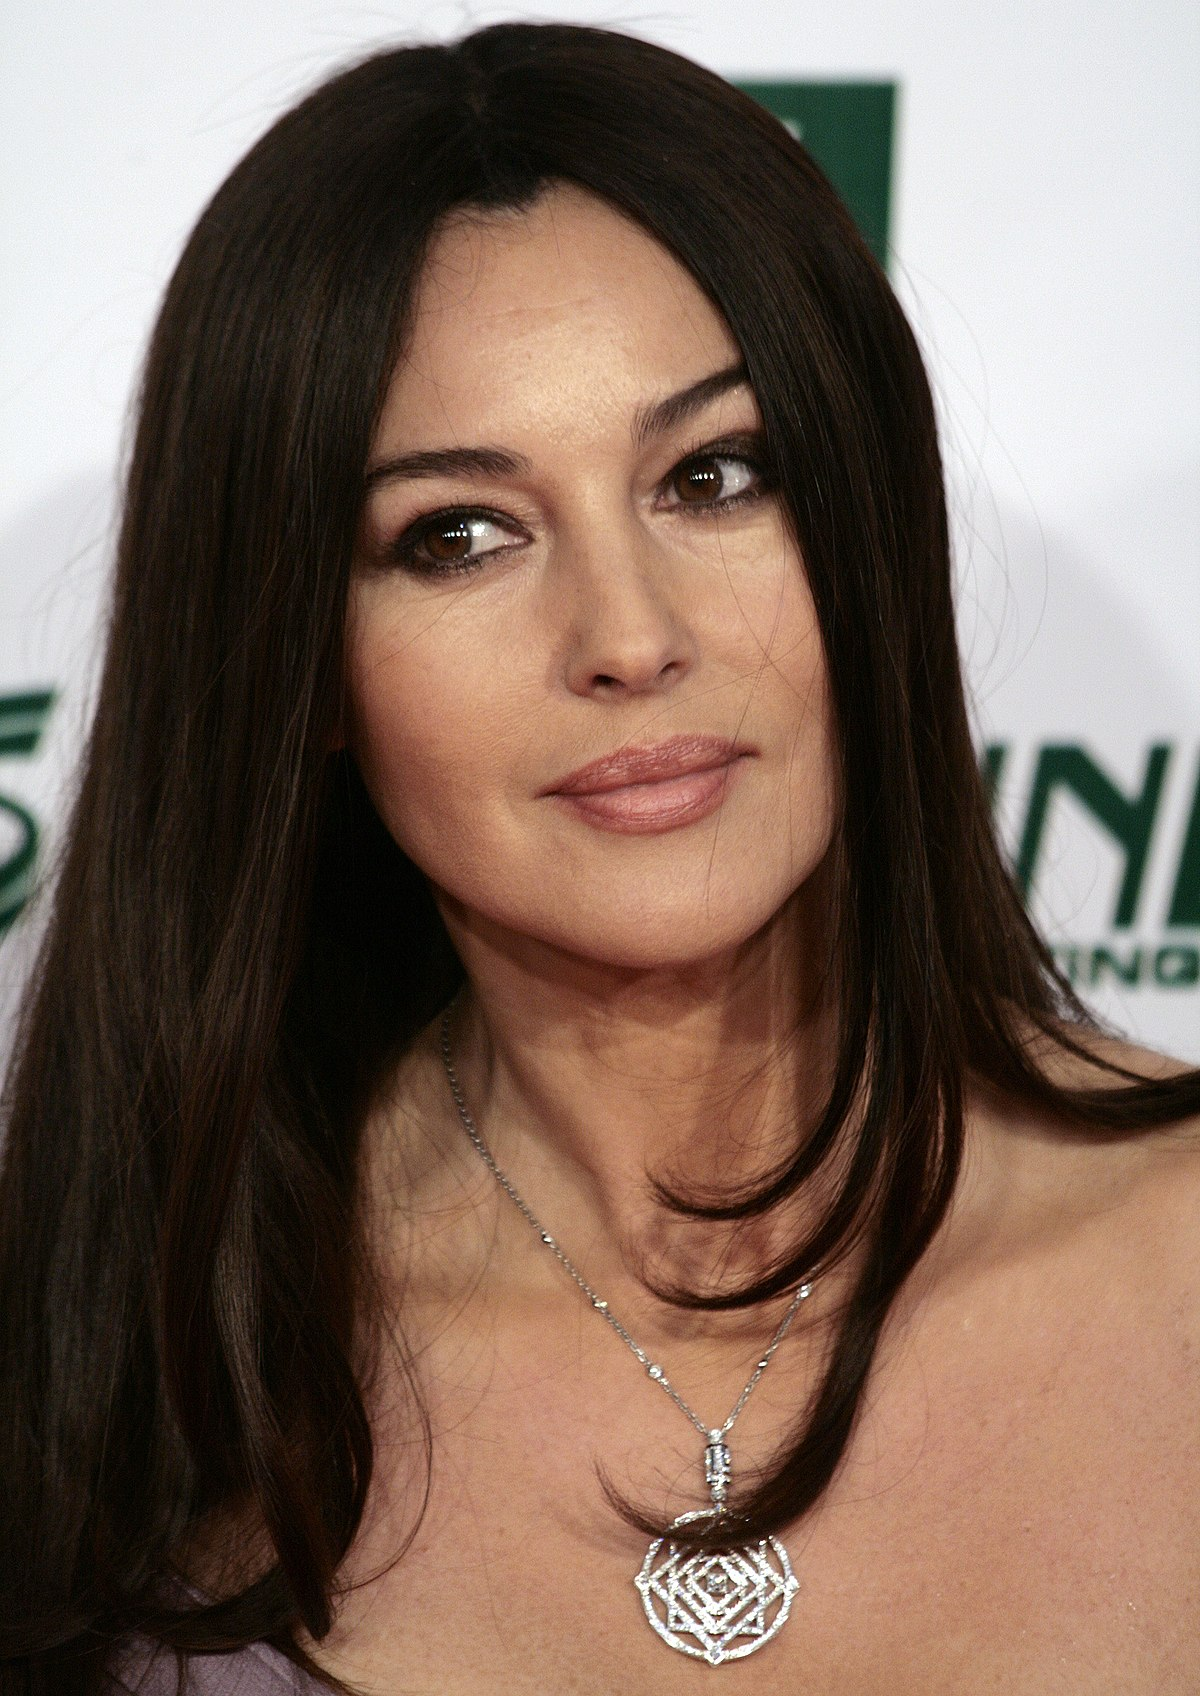 Monica Bellucci - Wikipedia